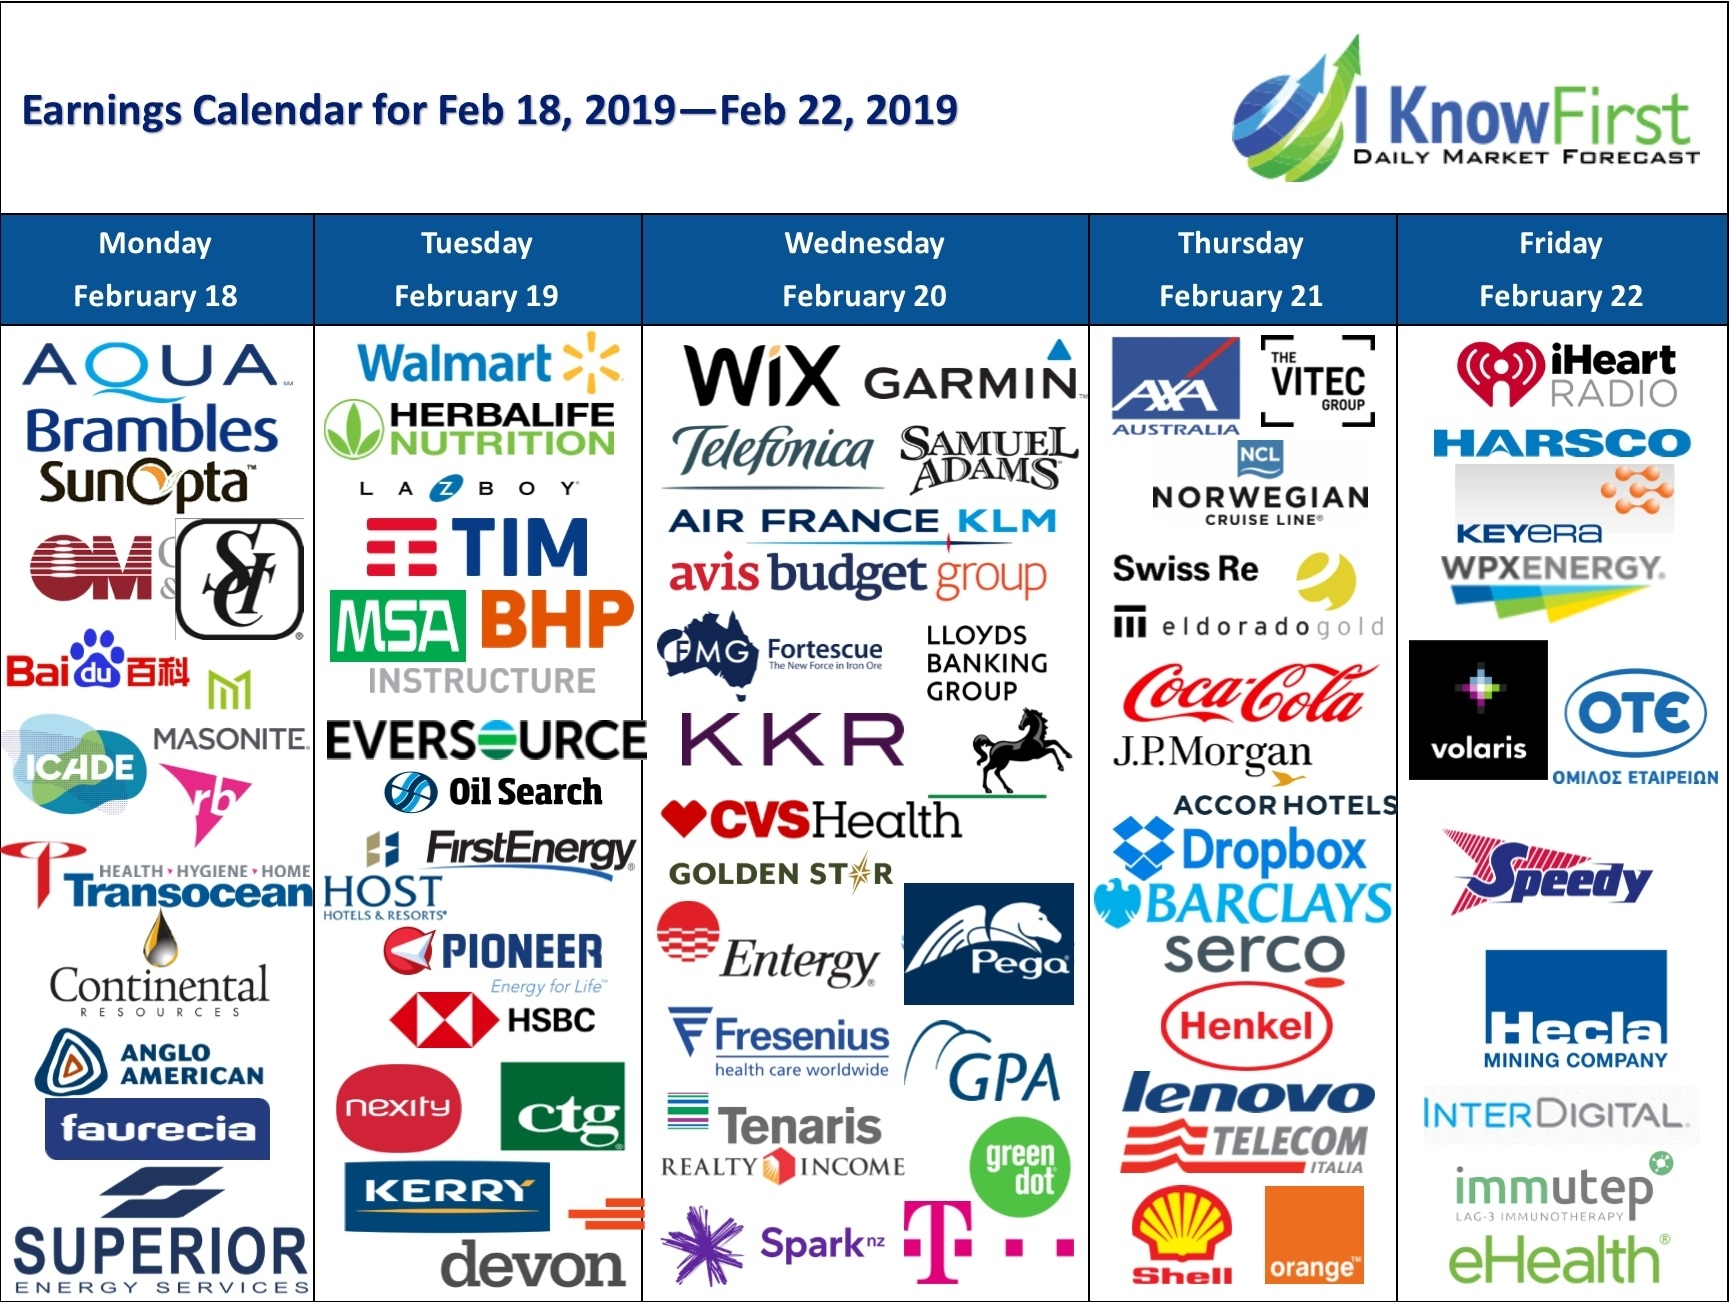 Week #8, 2019: Earnings Calendar